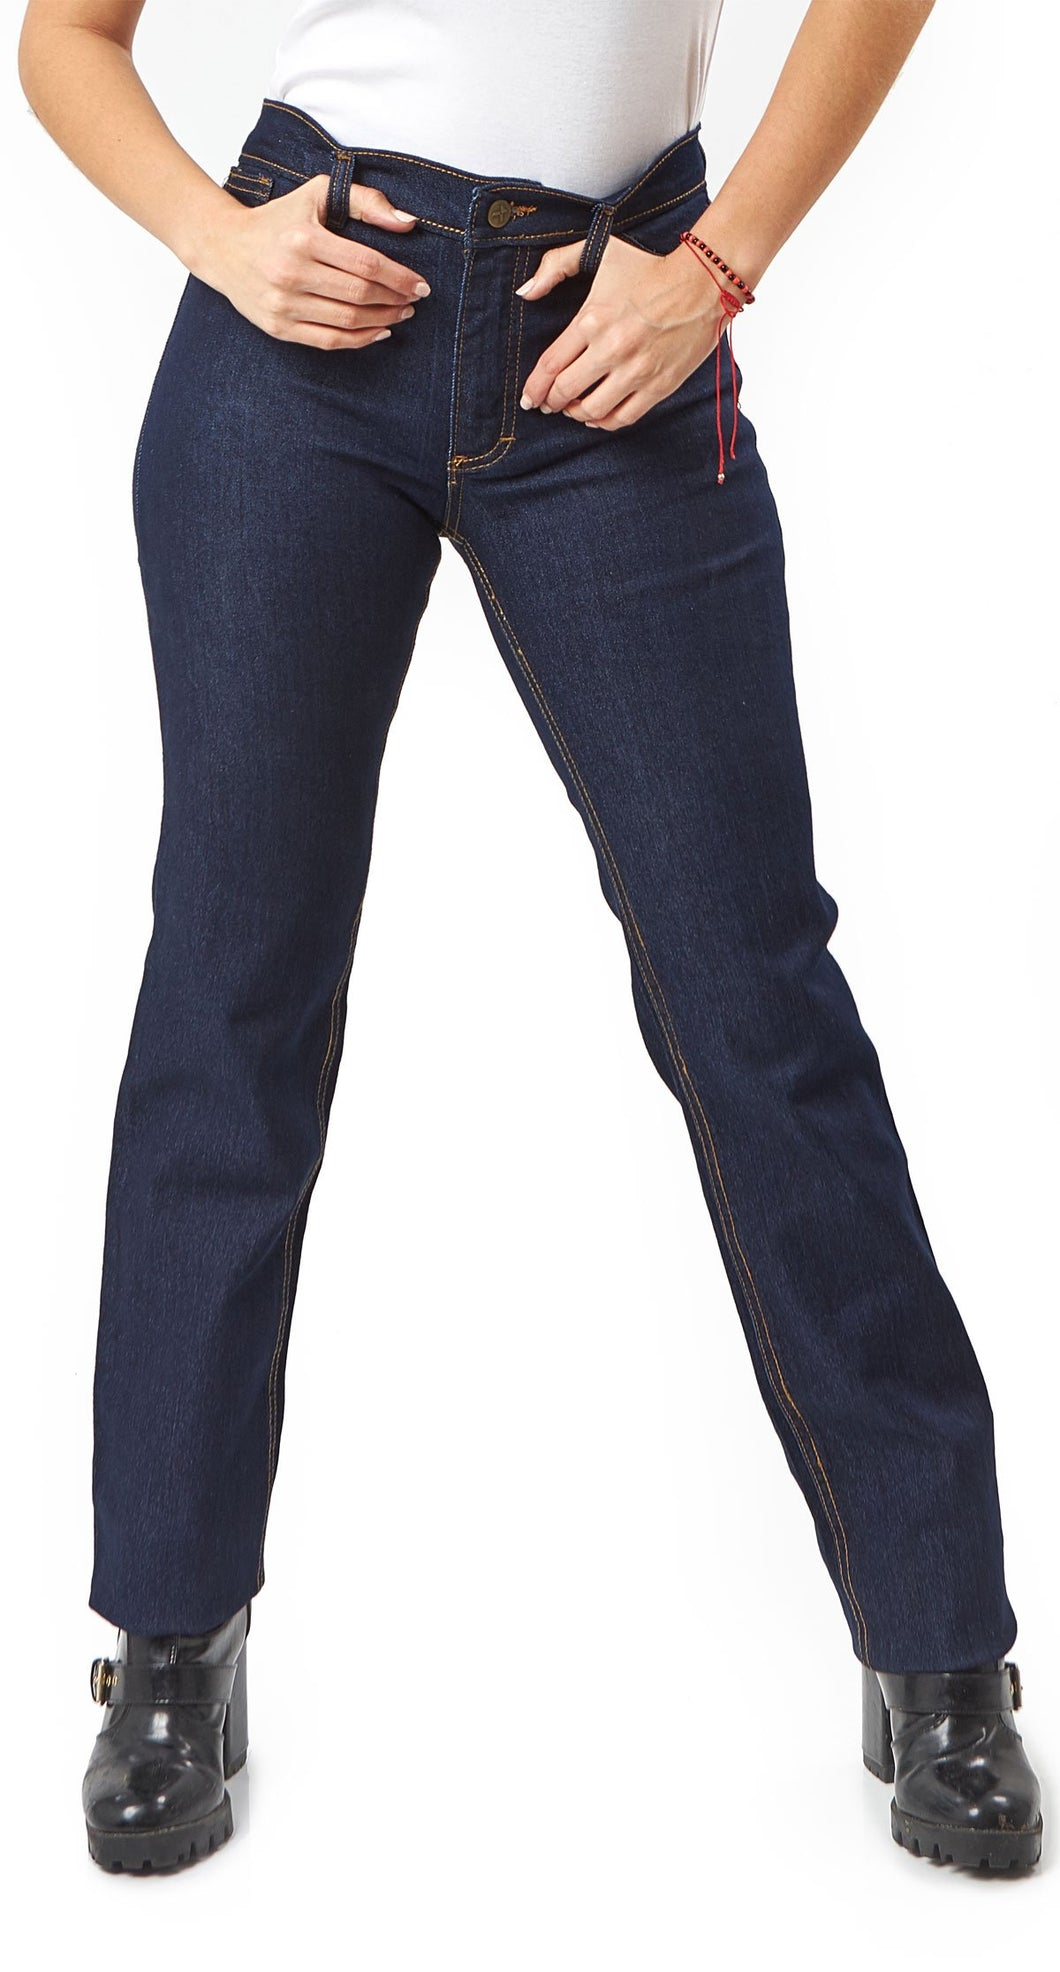 KJ51 - Kolossus Women Cotton Blend Super Stretch Work Jeans with Triple Seams